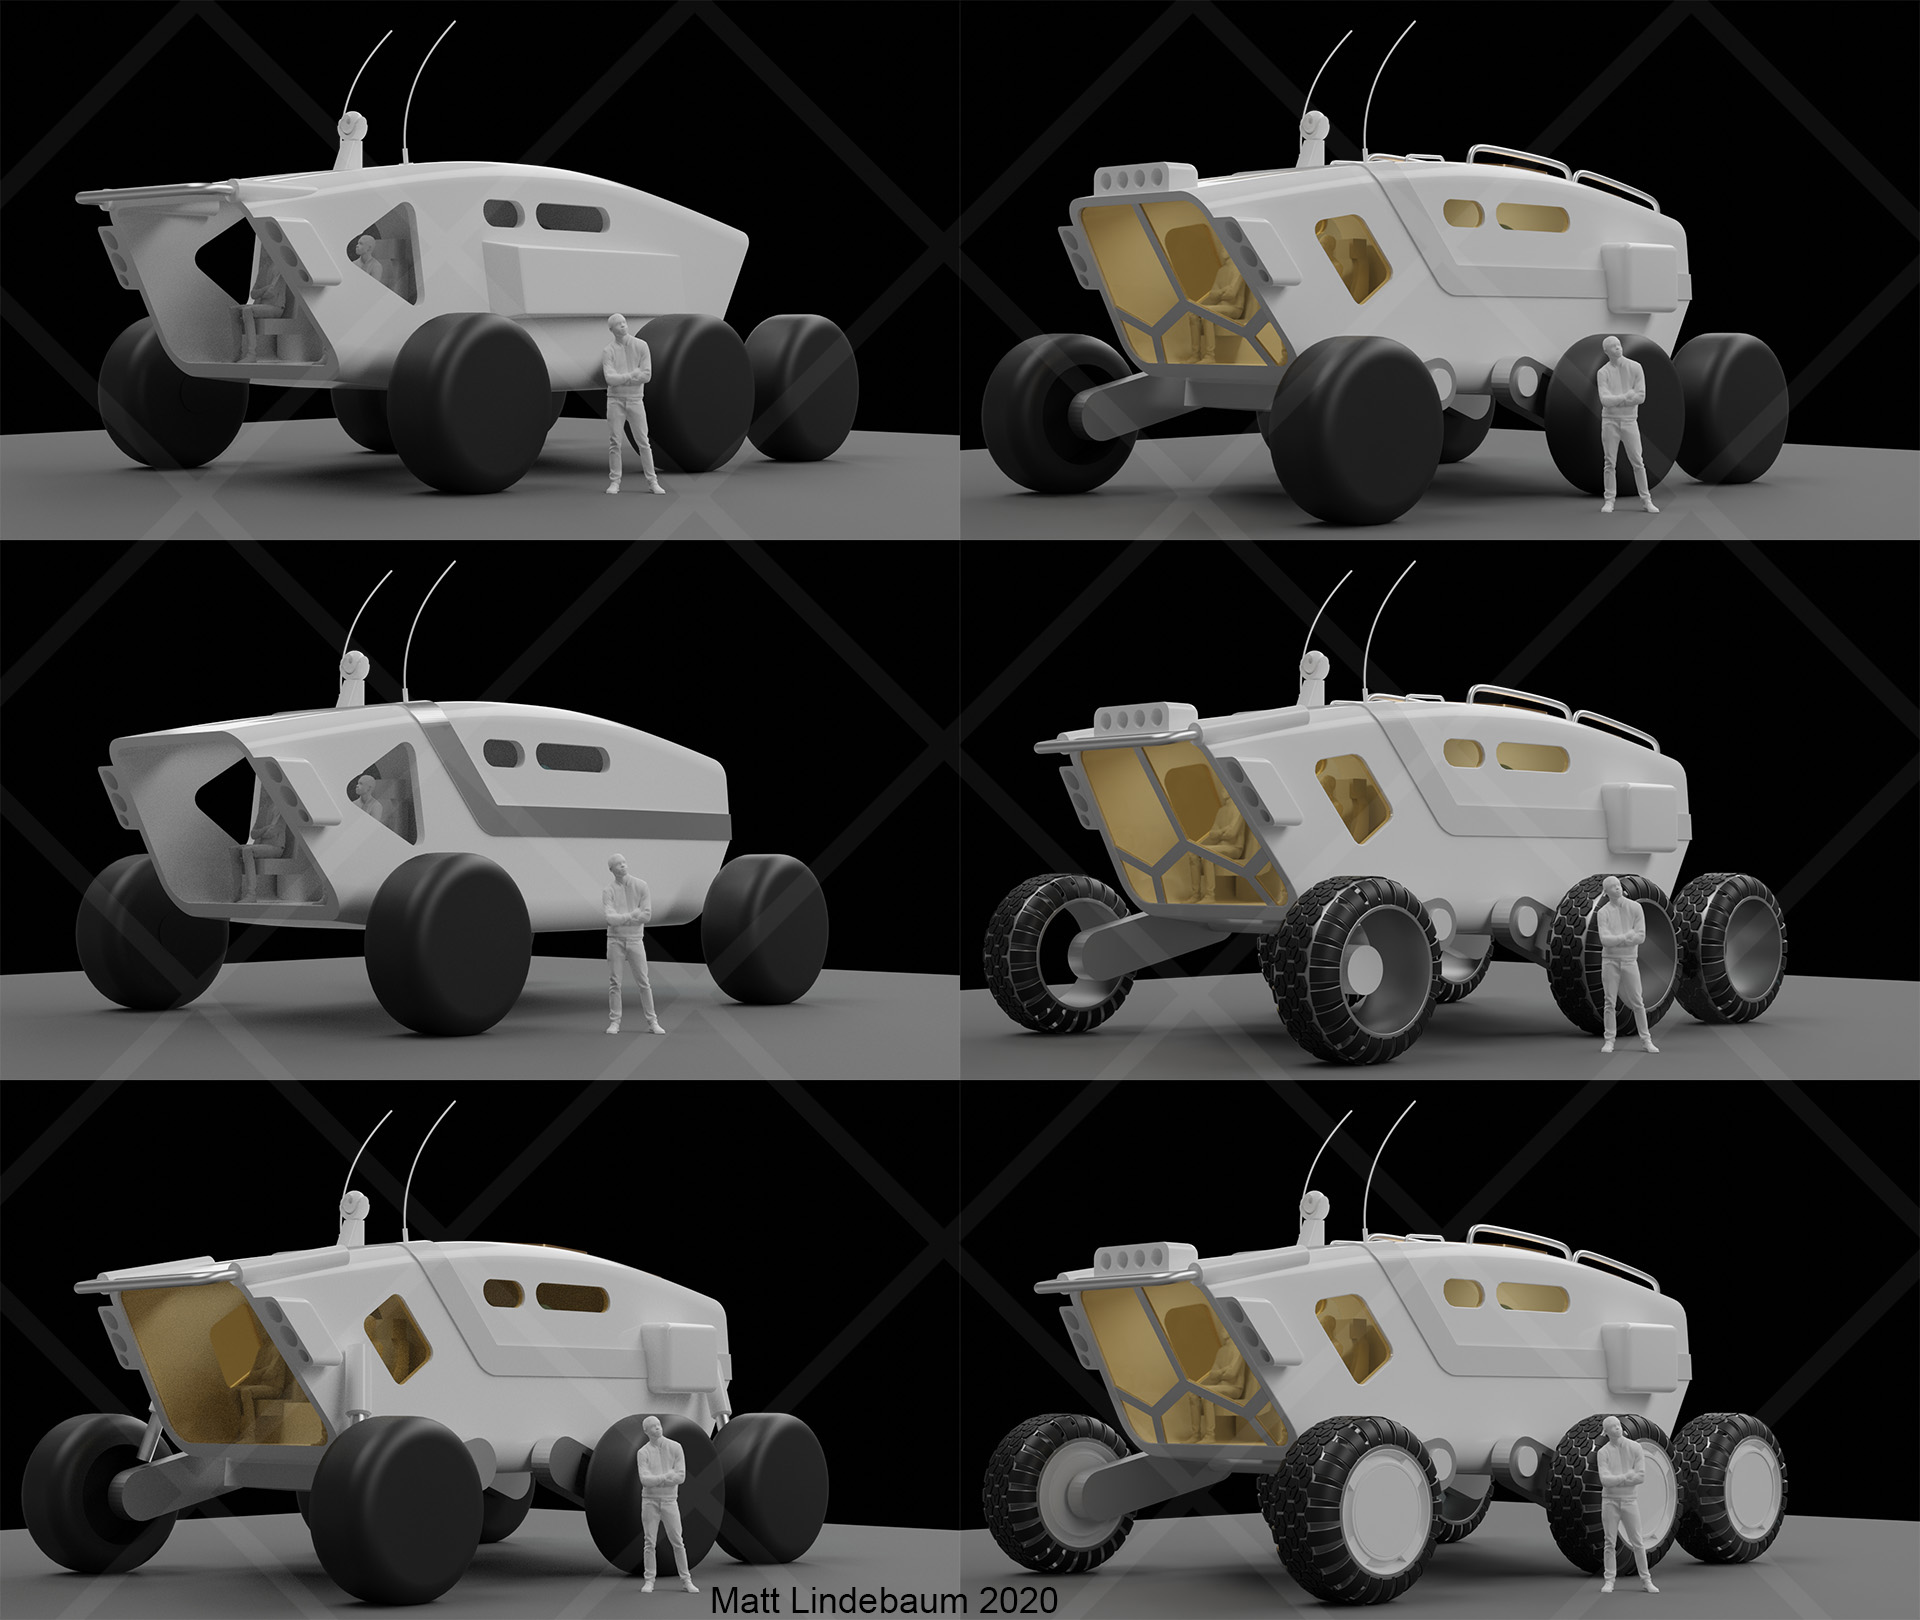 Space Rover Challenge 2020